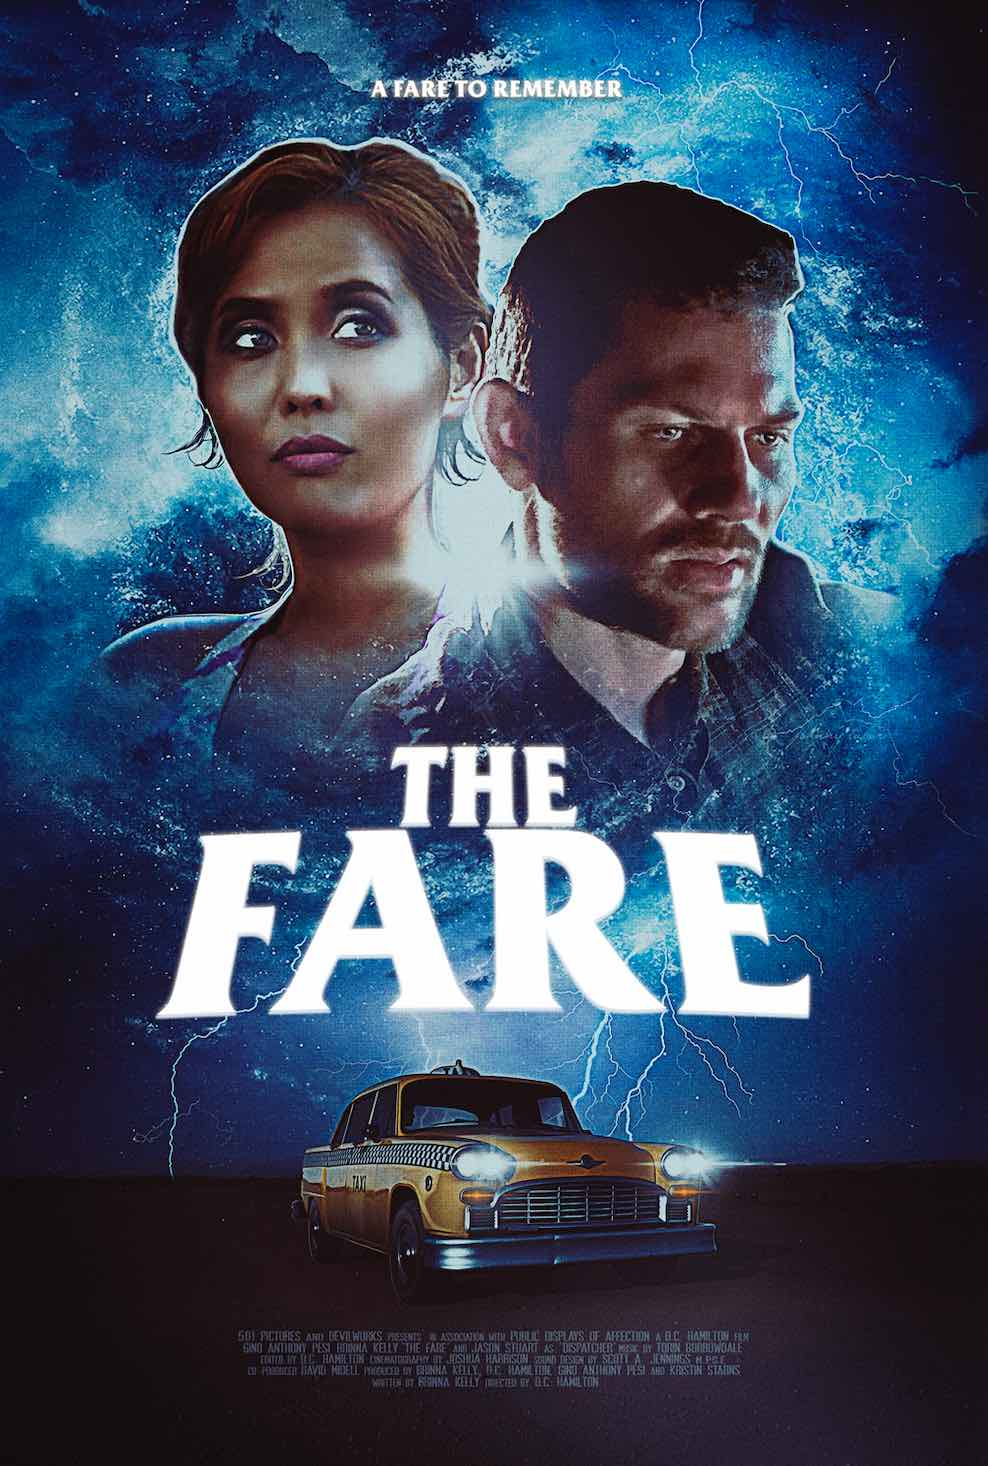 THE FARE POSTER - THE FARE Out Now From DREAD